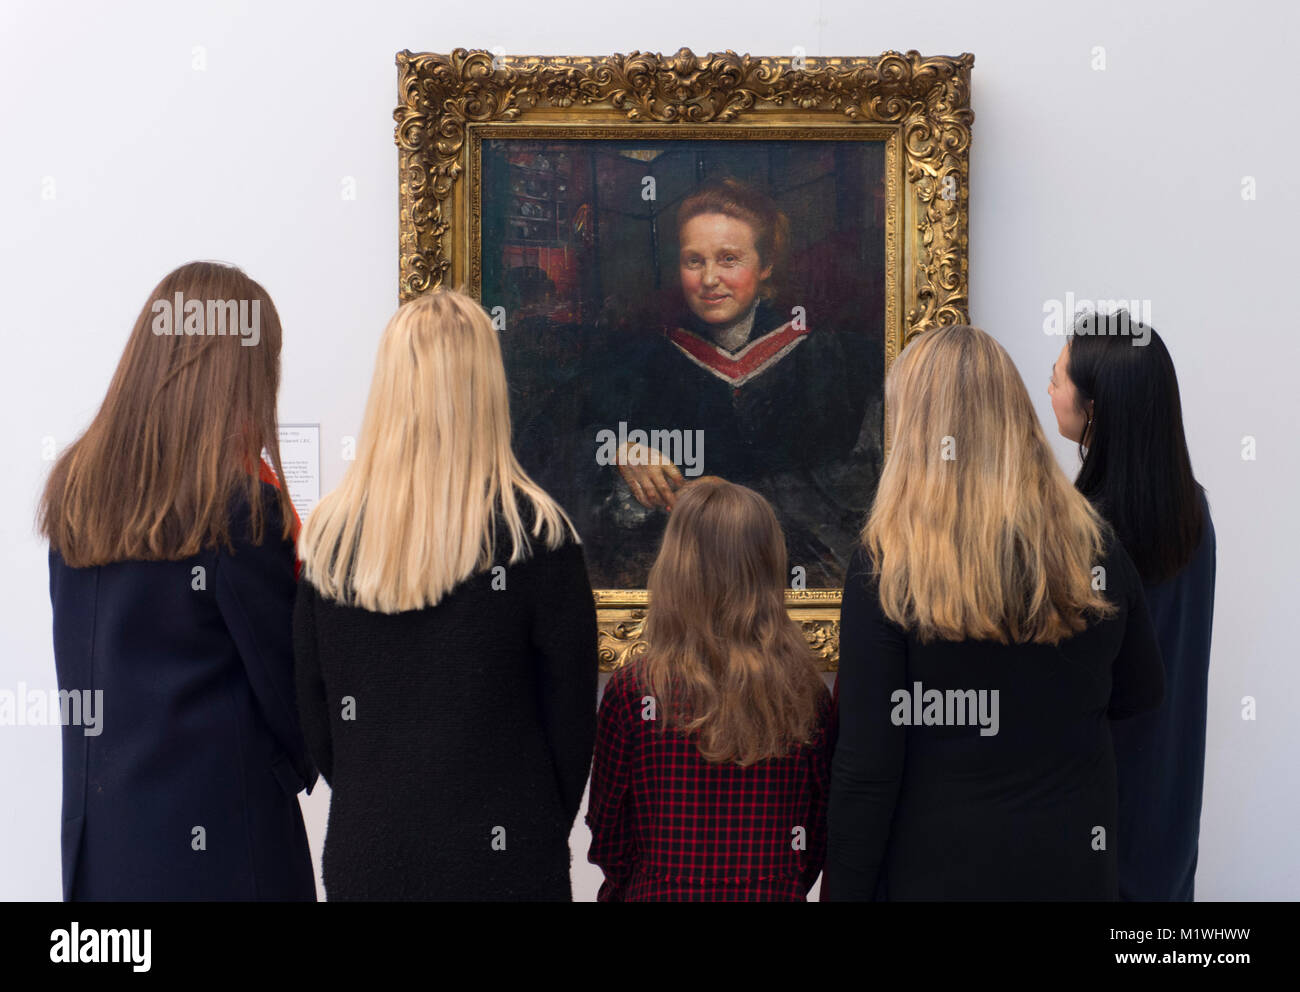 London, UK. 2nd Feb, 2018. Annie Swynnerton's portrait of Millicent Fawcett, newly on display at Tate Britain to - Stock Image